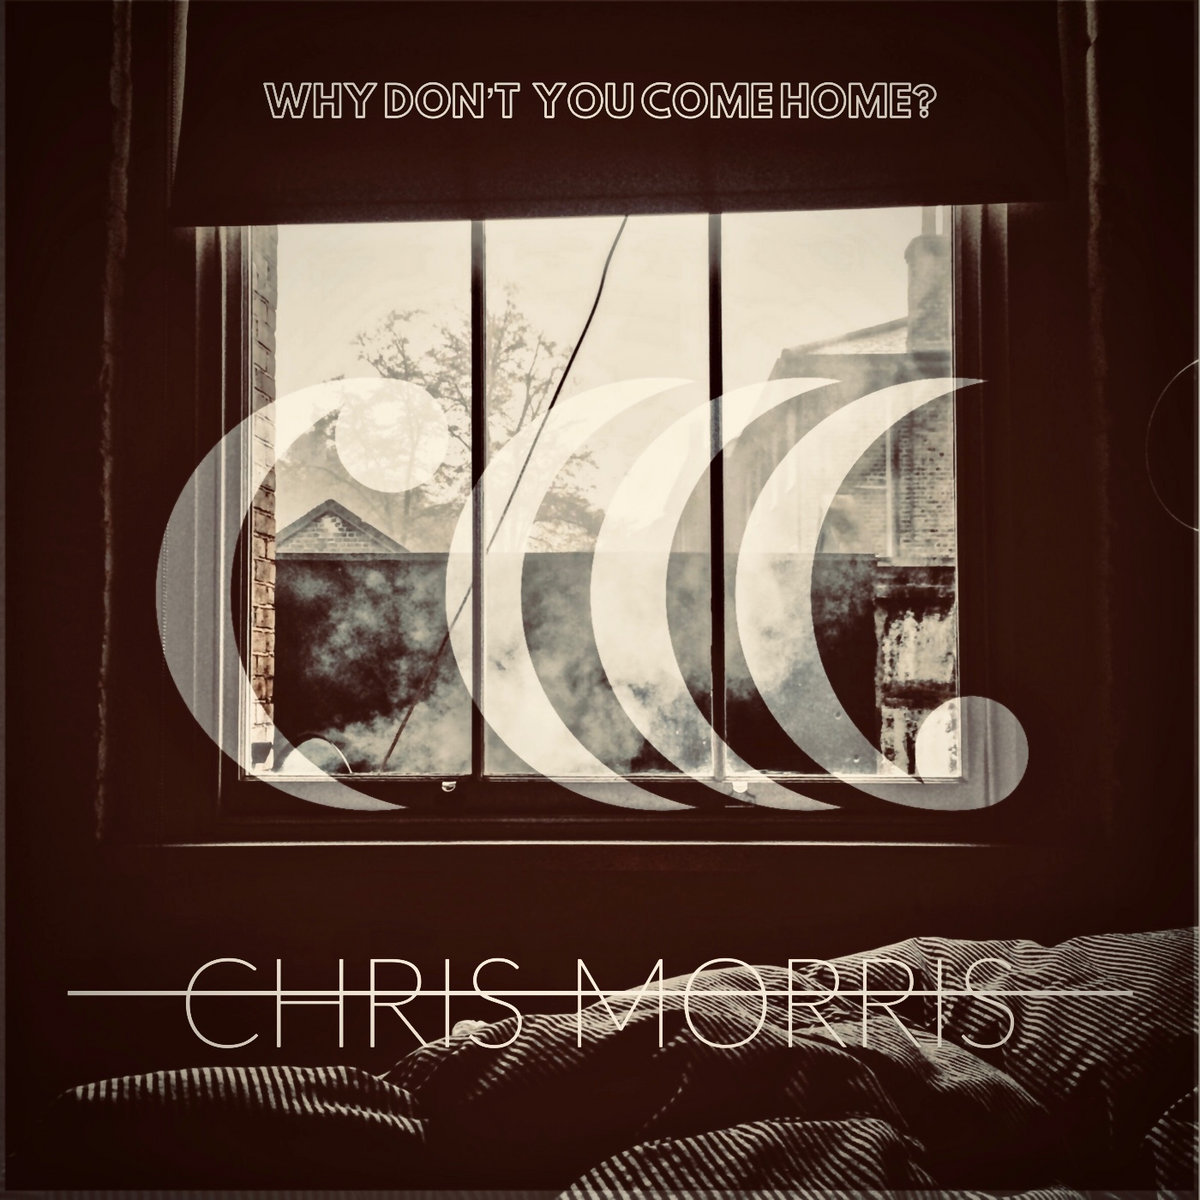 Why Don't You Come Home? (Single) by Chris Morris